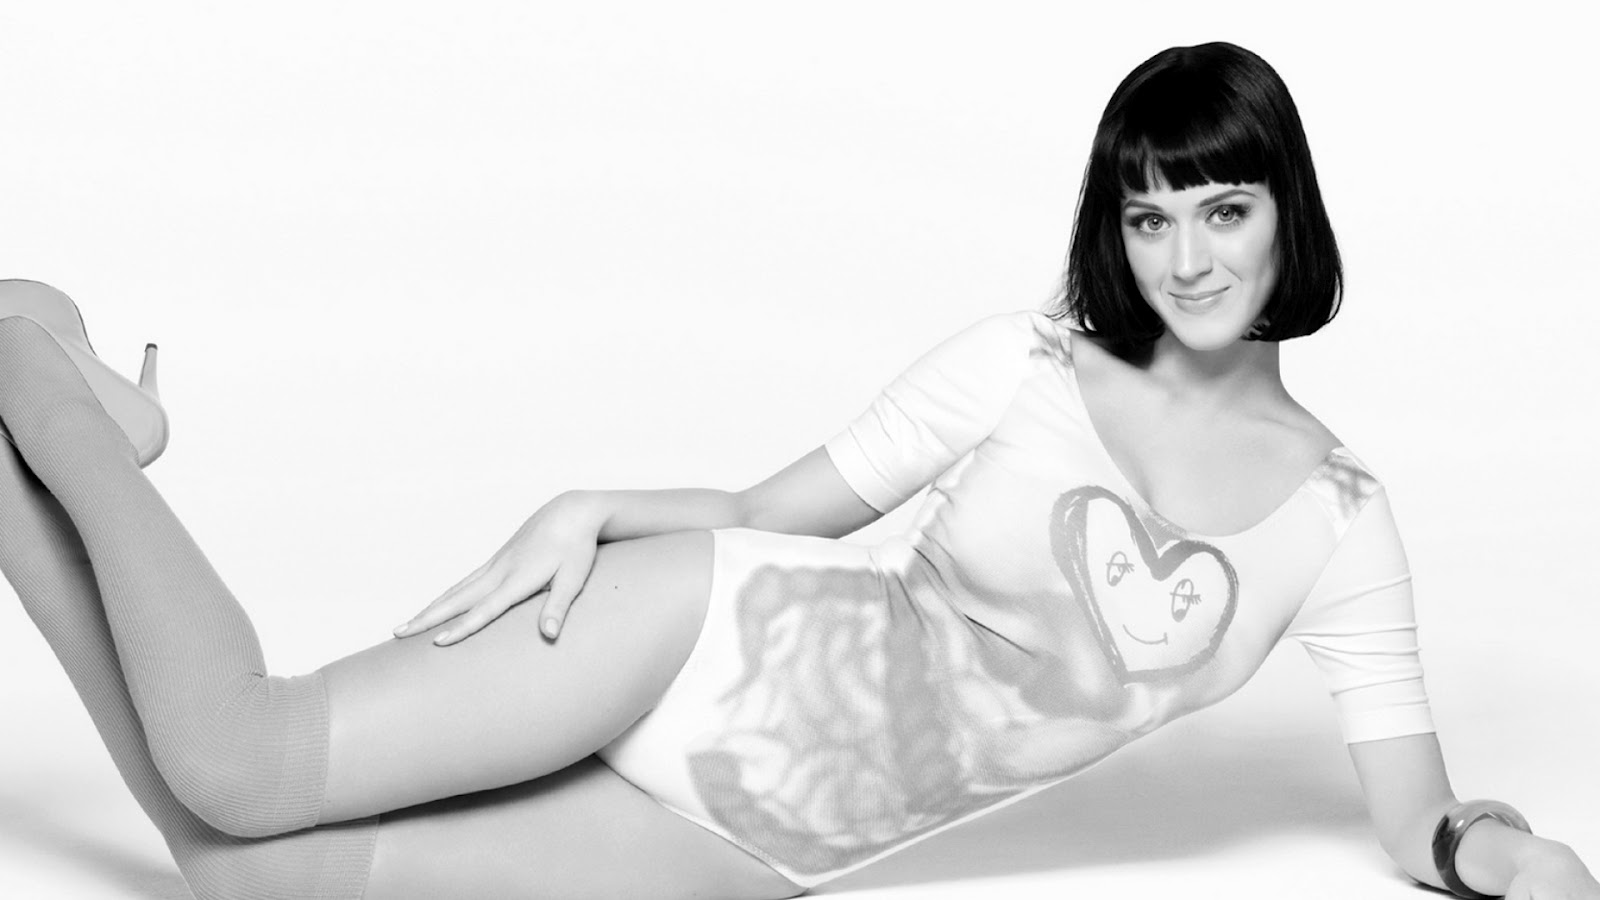 Katy Perry hd Wallpapers 2012 | All Hollywood Stars